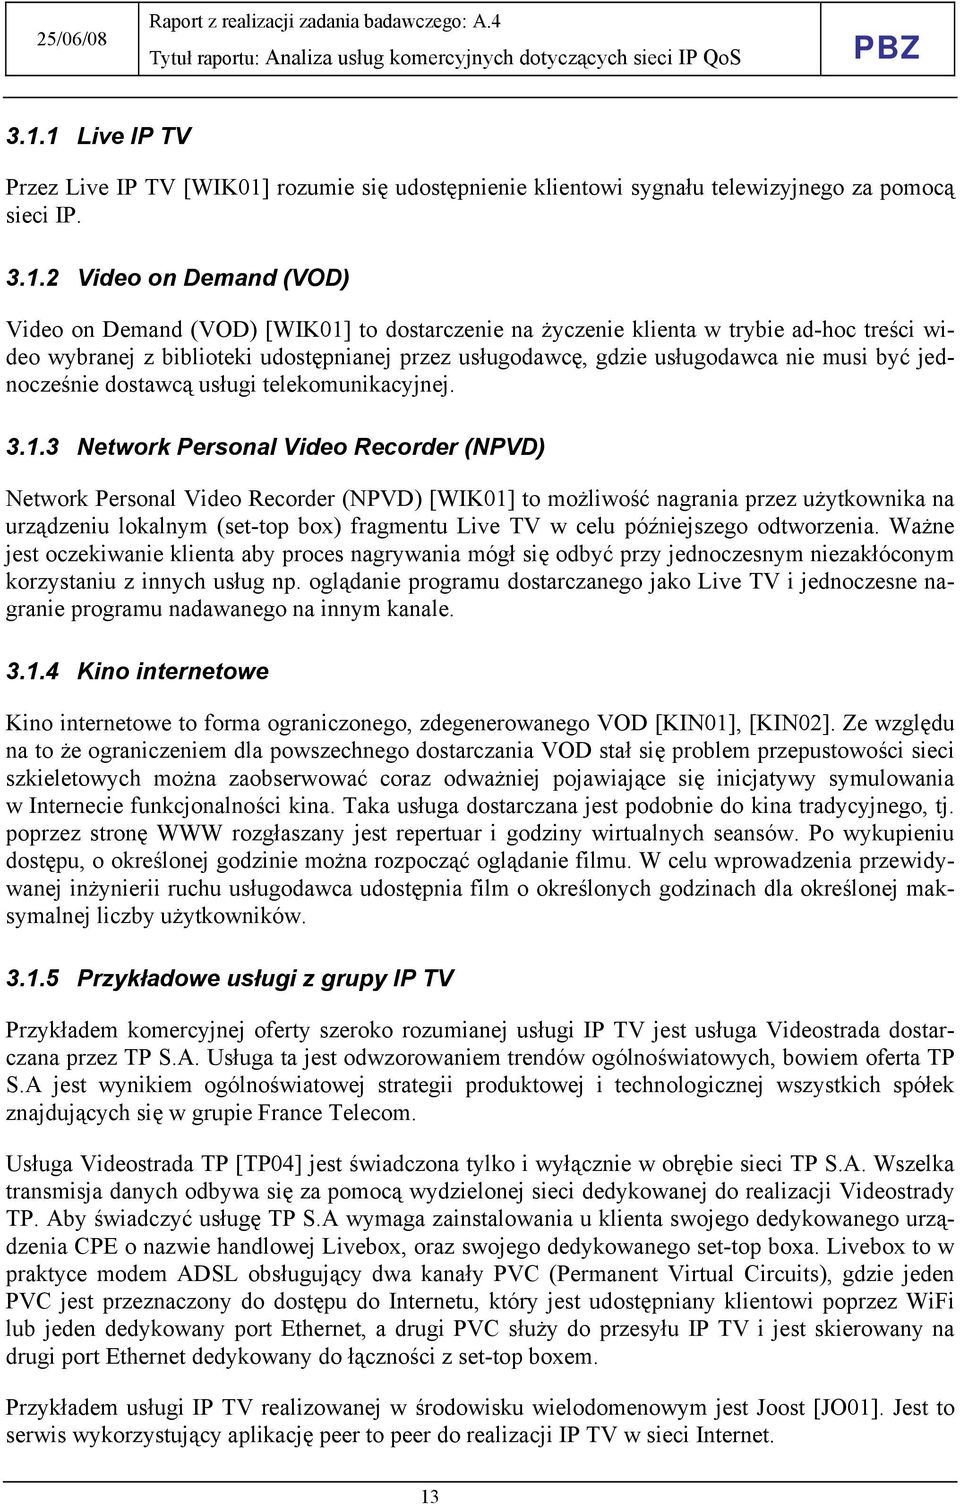 3 Network Personal Video Recorder (NPVD) Network Personal Video Recorder (NPVD) [WIK01] to możliwość nagrania przez użytkownika na urządzeniu lokalnym (set-top box) fragmentu Live TV w celu